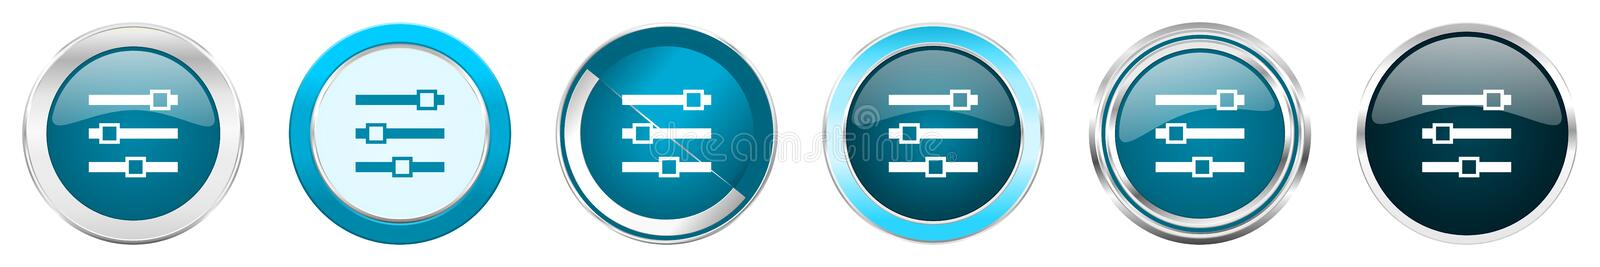 Slider silver metallic chrome border icons in 6 options, set of web blue round buttons isolated on white background.  royalty free illustration